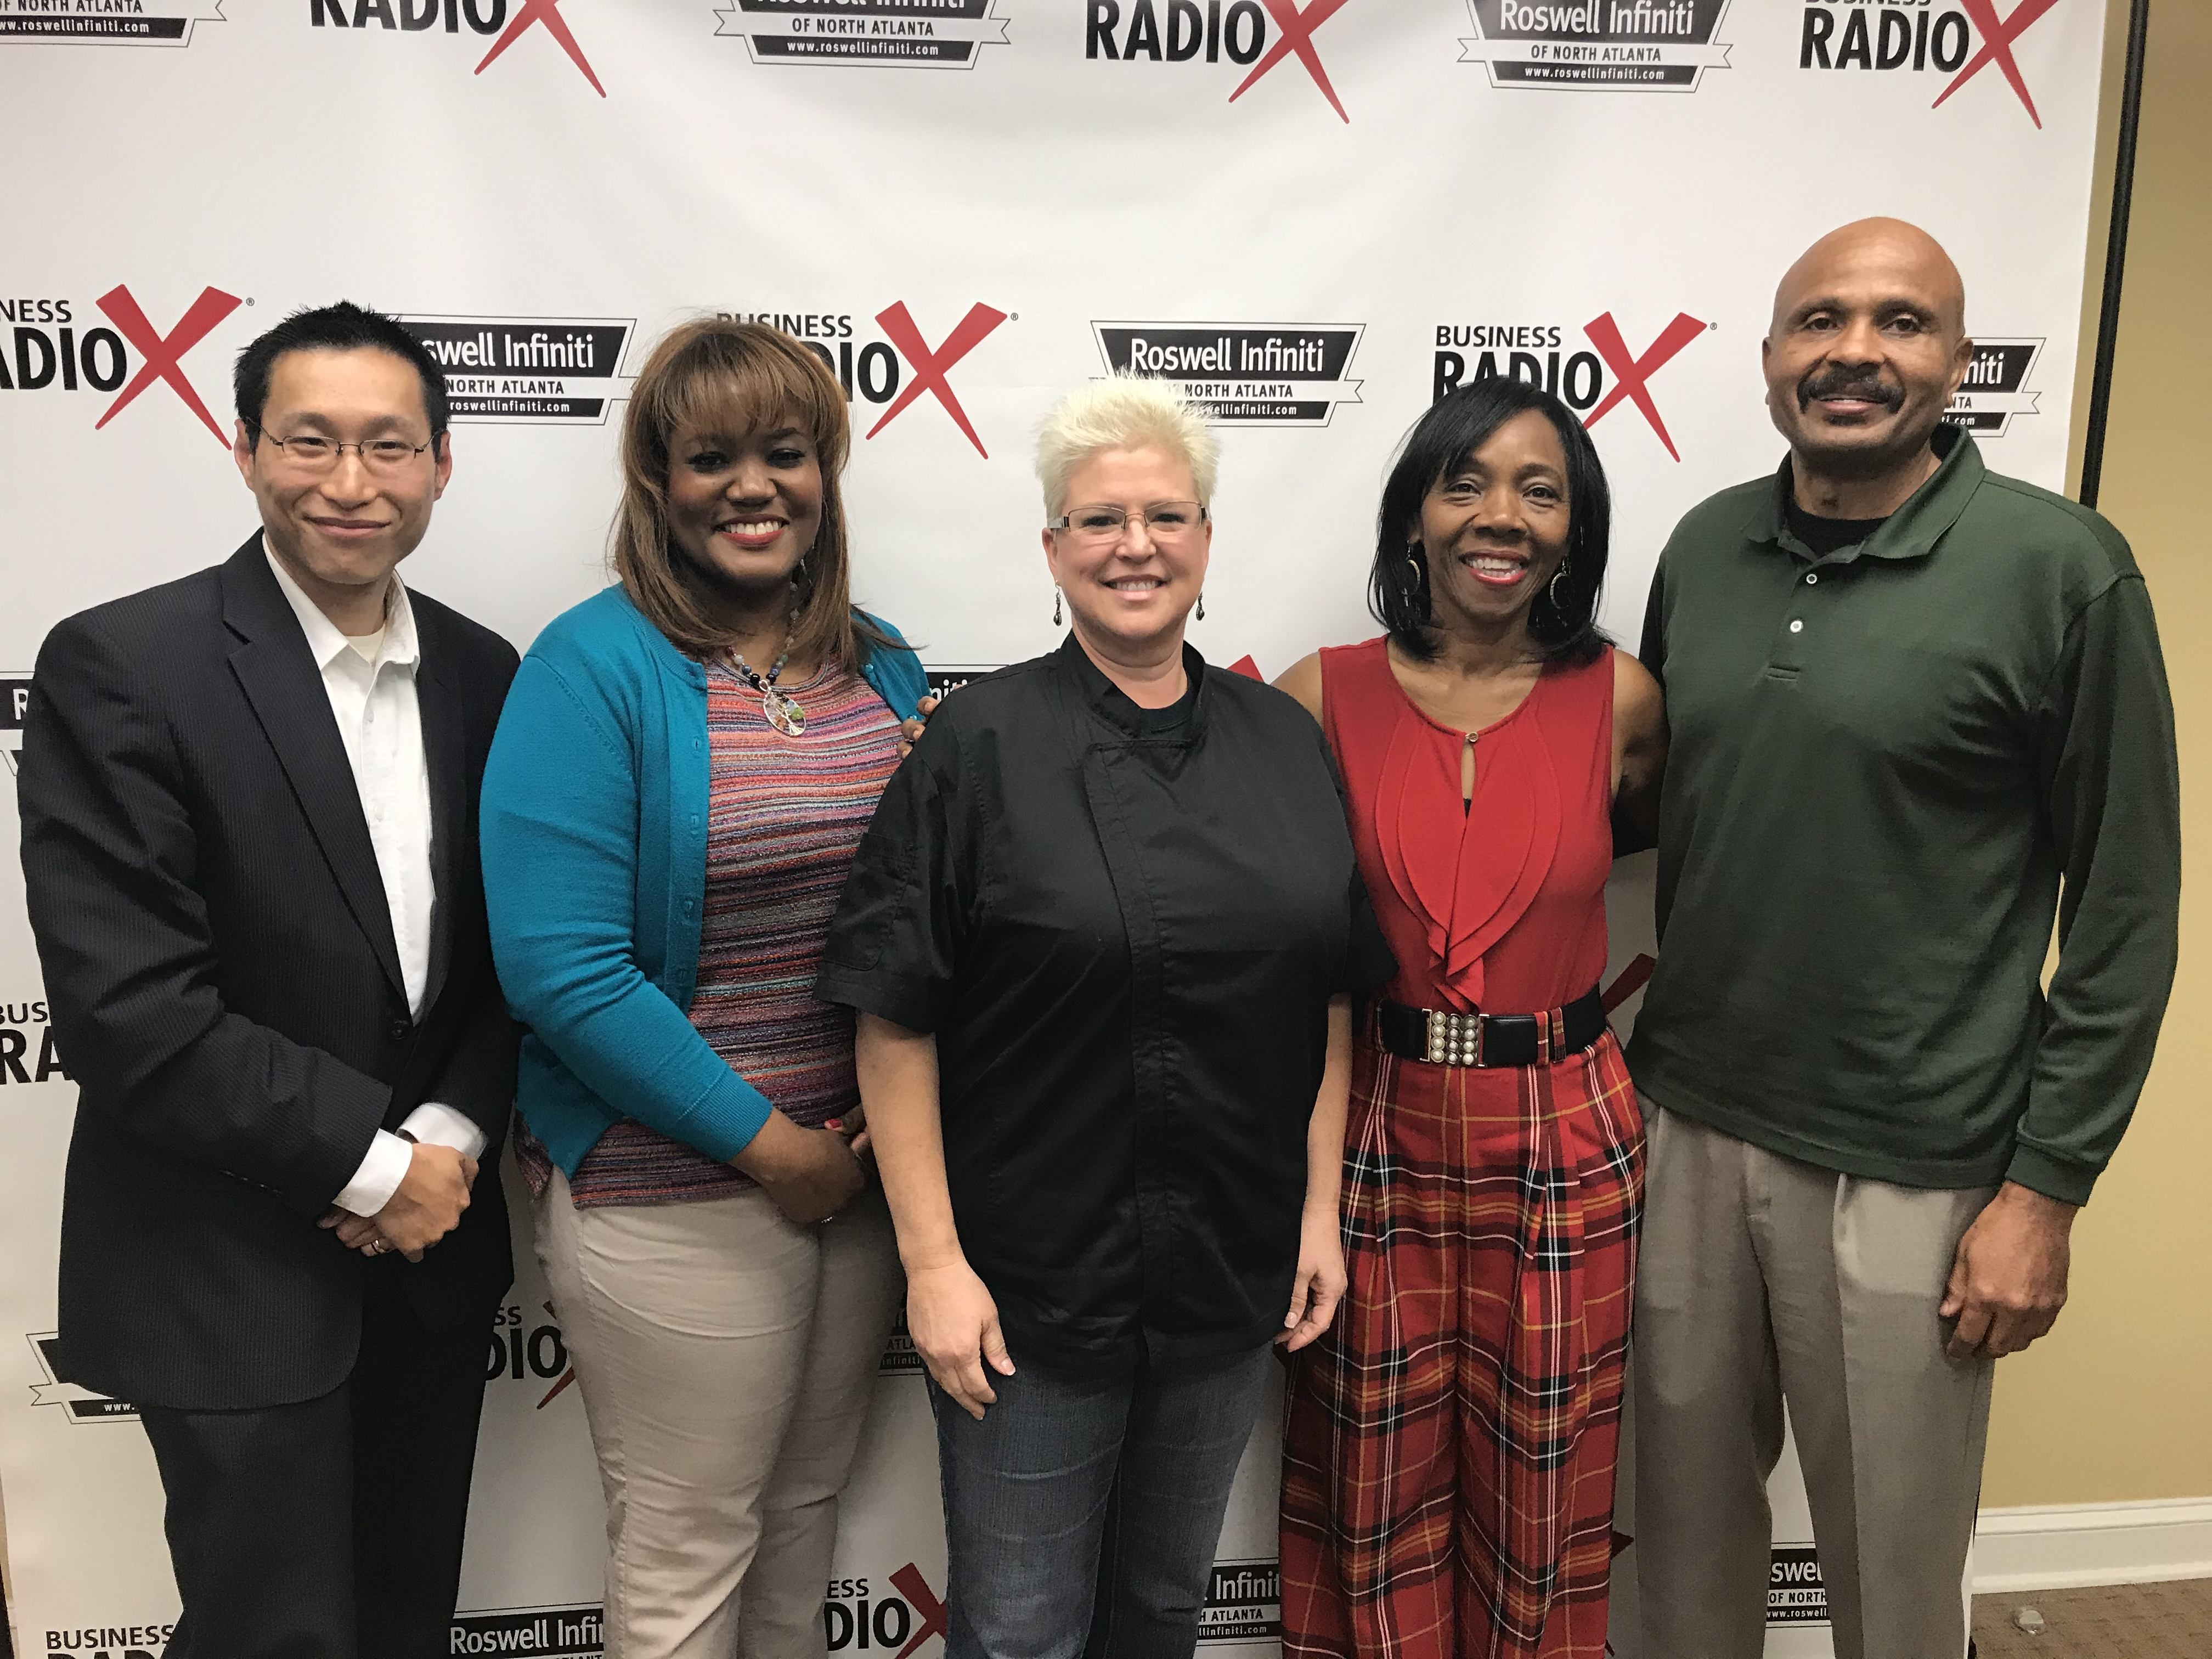 Family Business Radio, Episode 4: Valencia and Ozzie Giles, Lawrenceville-Suwanee School of Music, Melissa Gunderson, Morsels by Melissa, and Bonnie Mauldin, The Mauldin Group